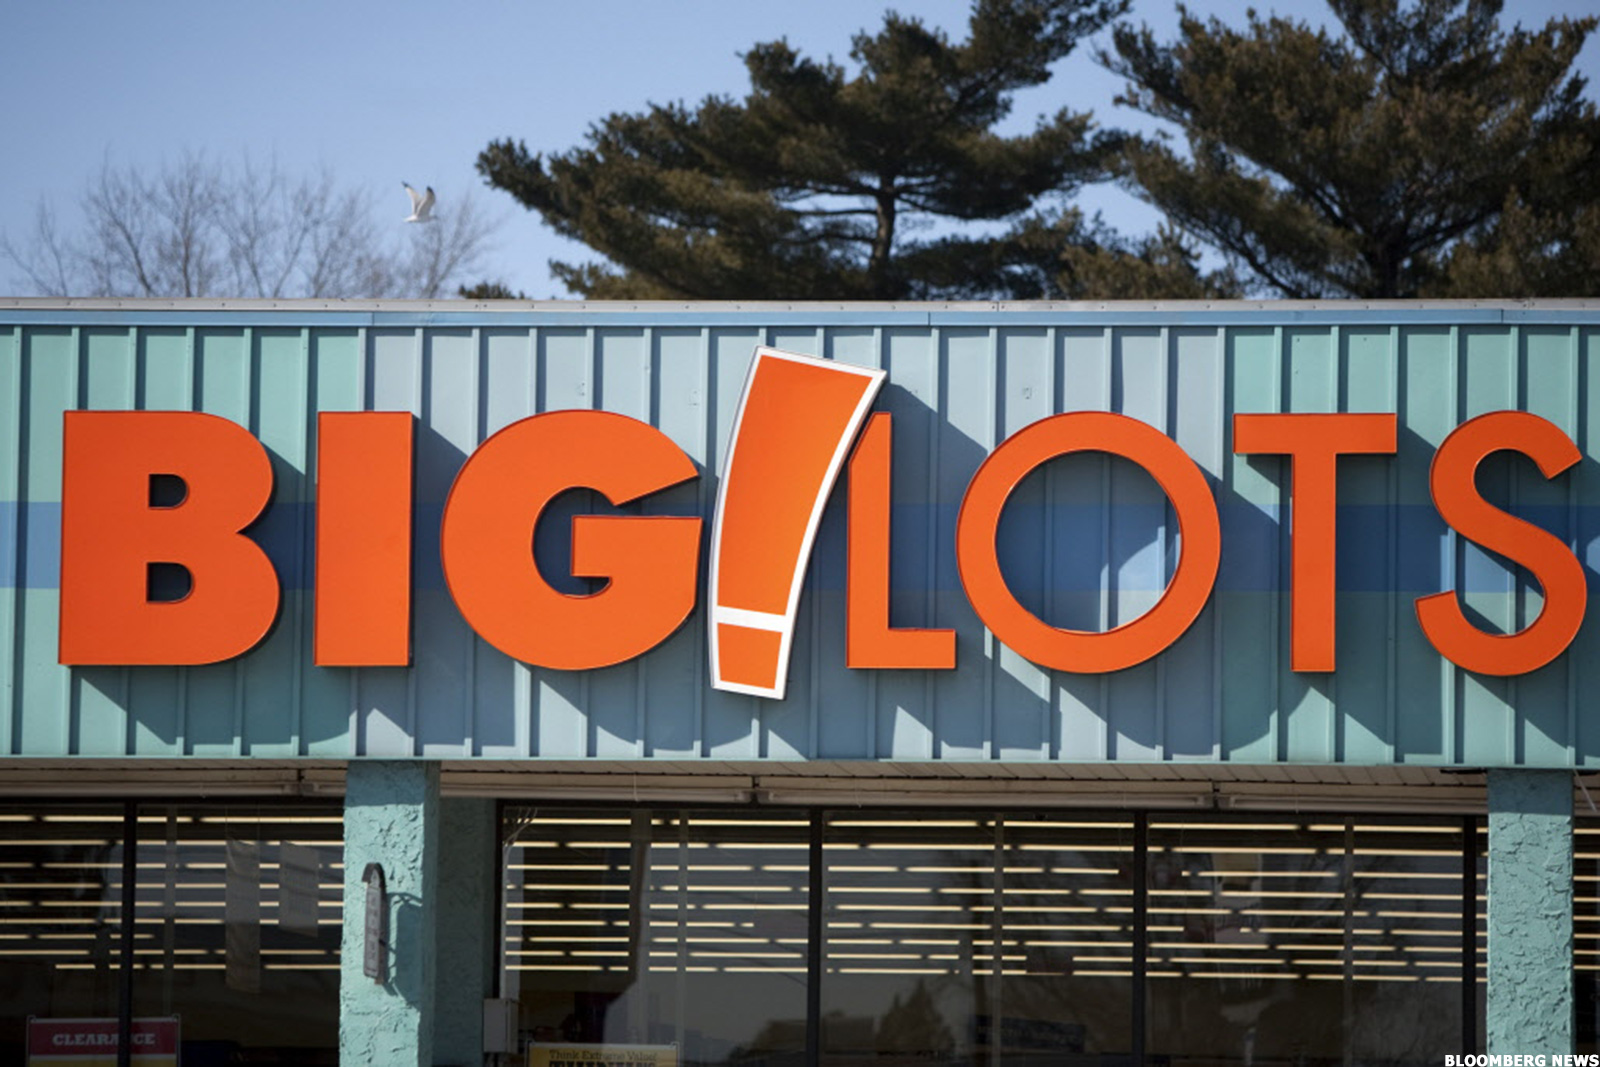 May 16,  · Big Lots is your neighborhood quality, discount retailer operating over 1, Big Lots stores in 48 states with product assortments in the merchandise categories of Furniture, Soft Home, Hard Home, Seasonal, Patio, Grocery, Consumables & Electronic Accessories.